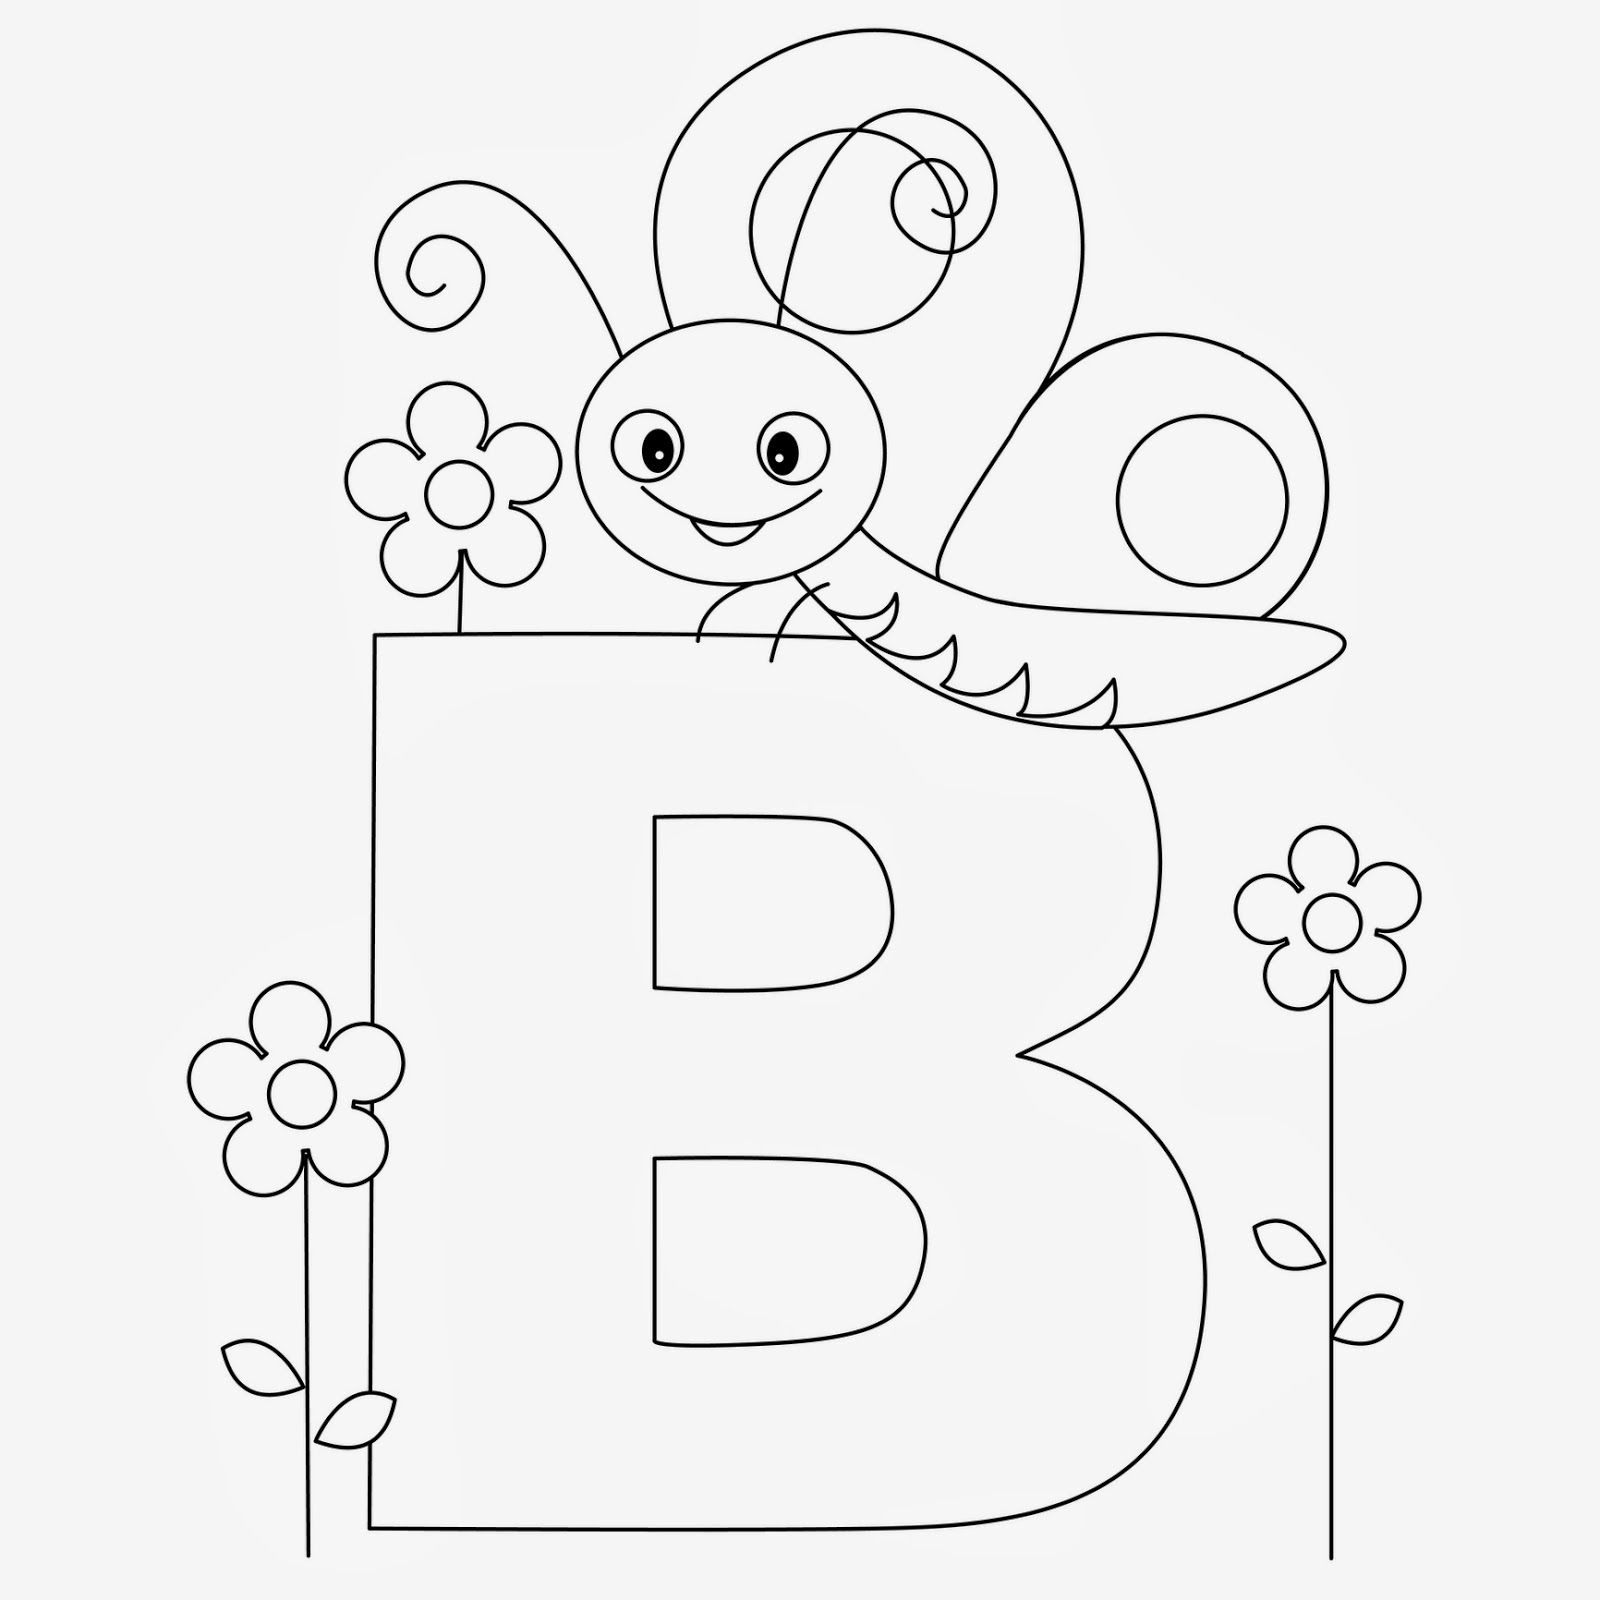 Printable Alphabet Coloring Pages Butterfly